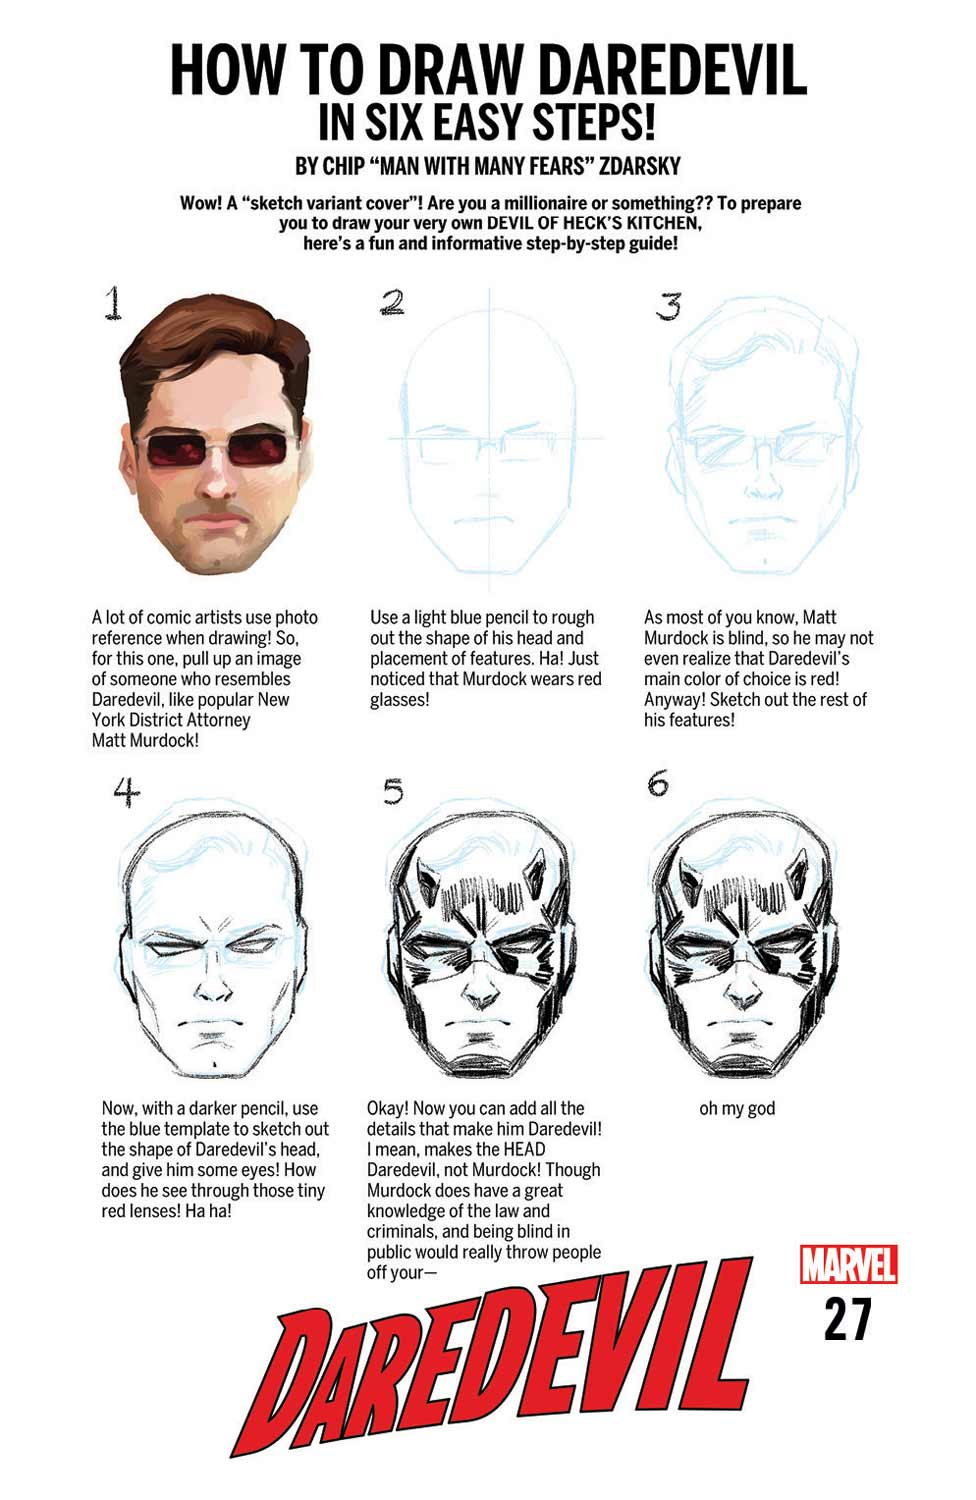 DAREDEVIL_HOW_TO_DRAW_VARIANT_CVR